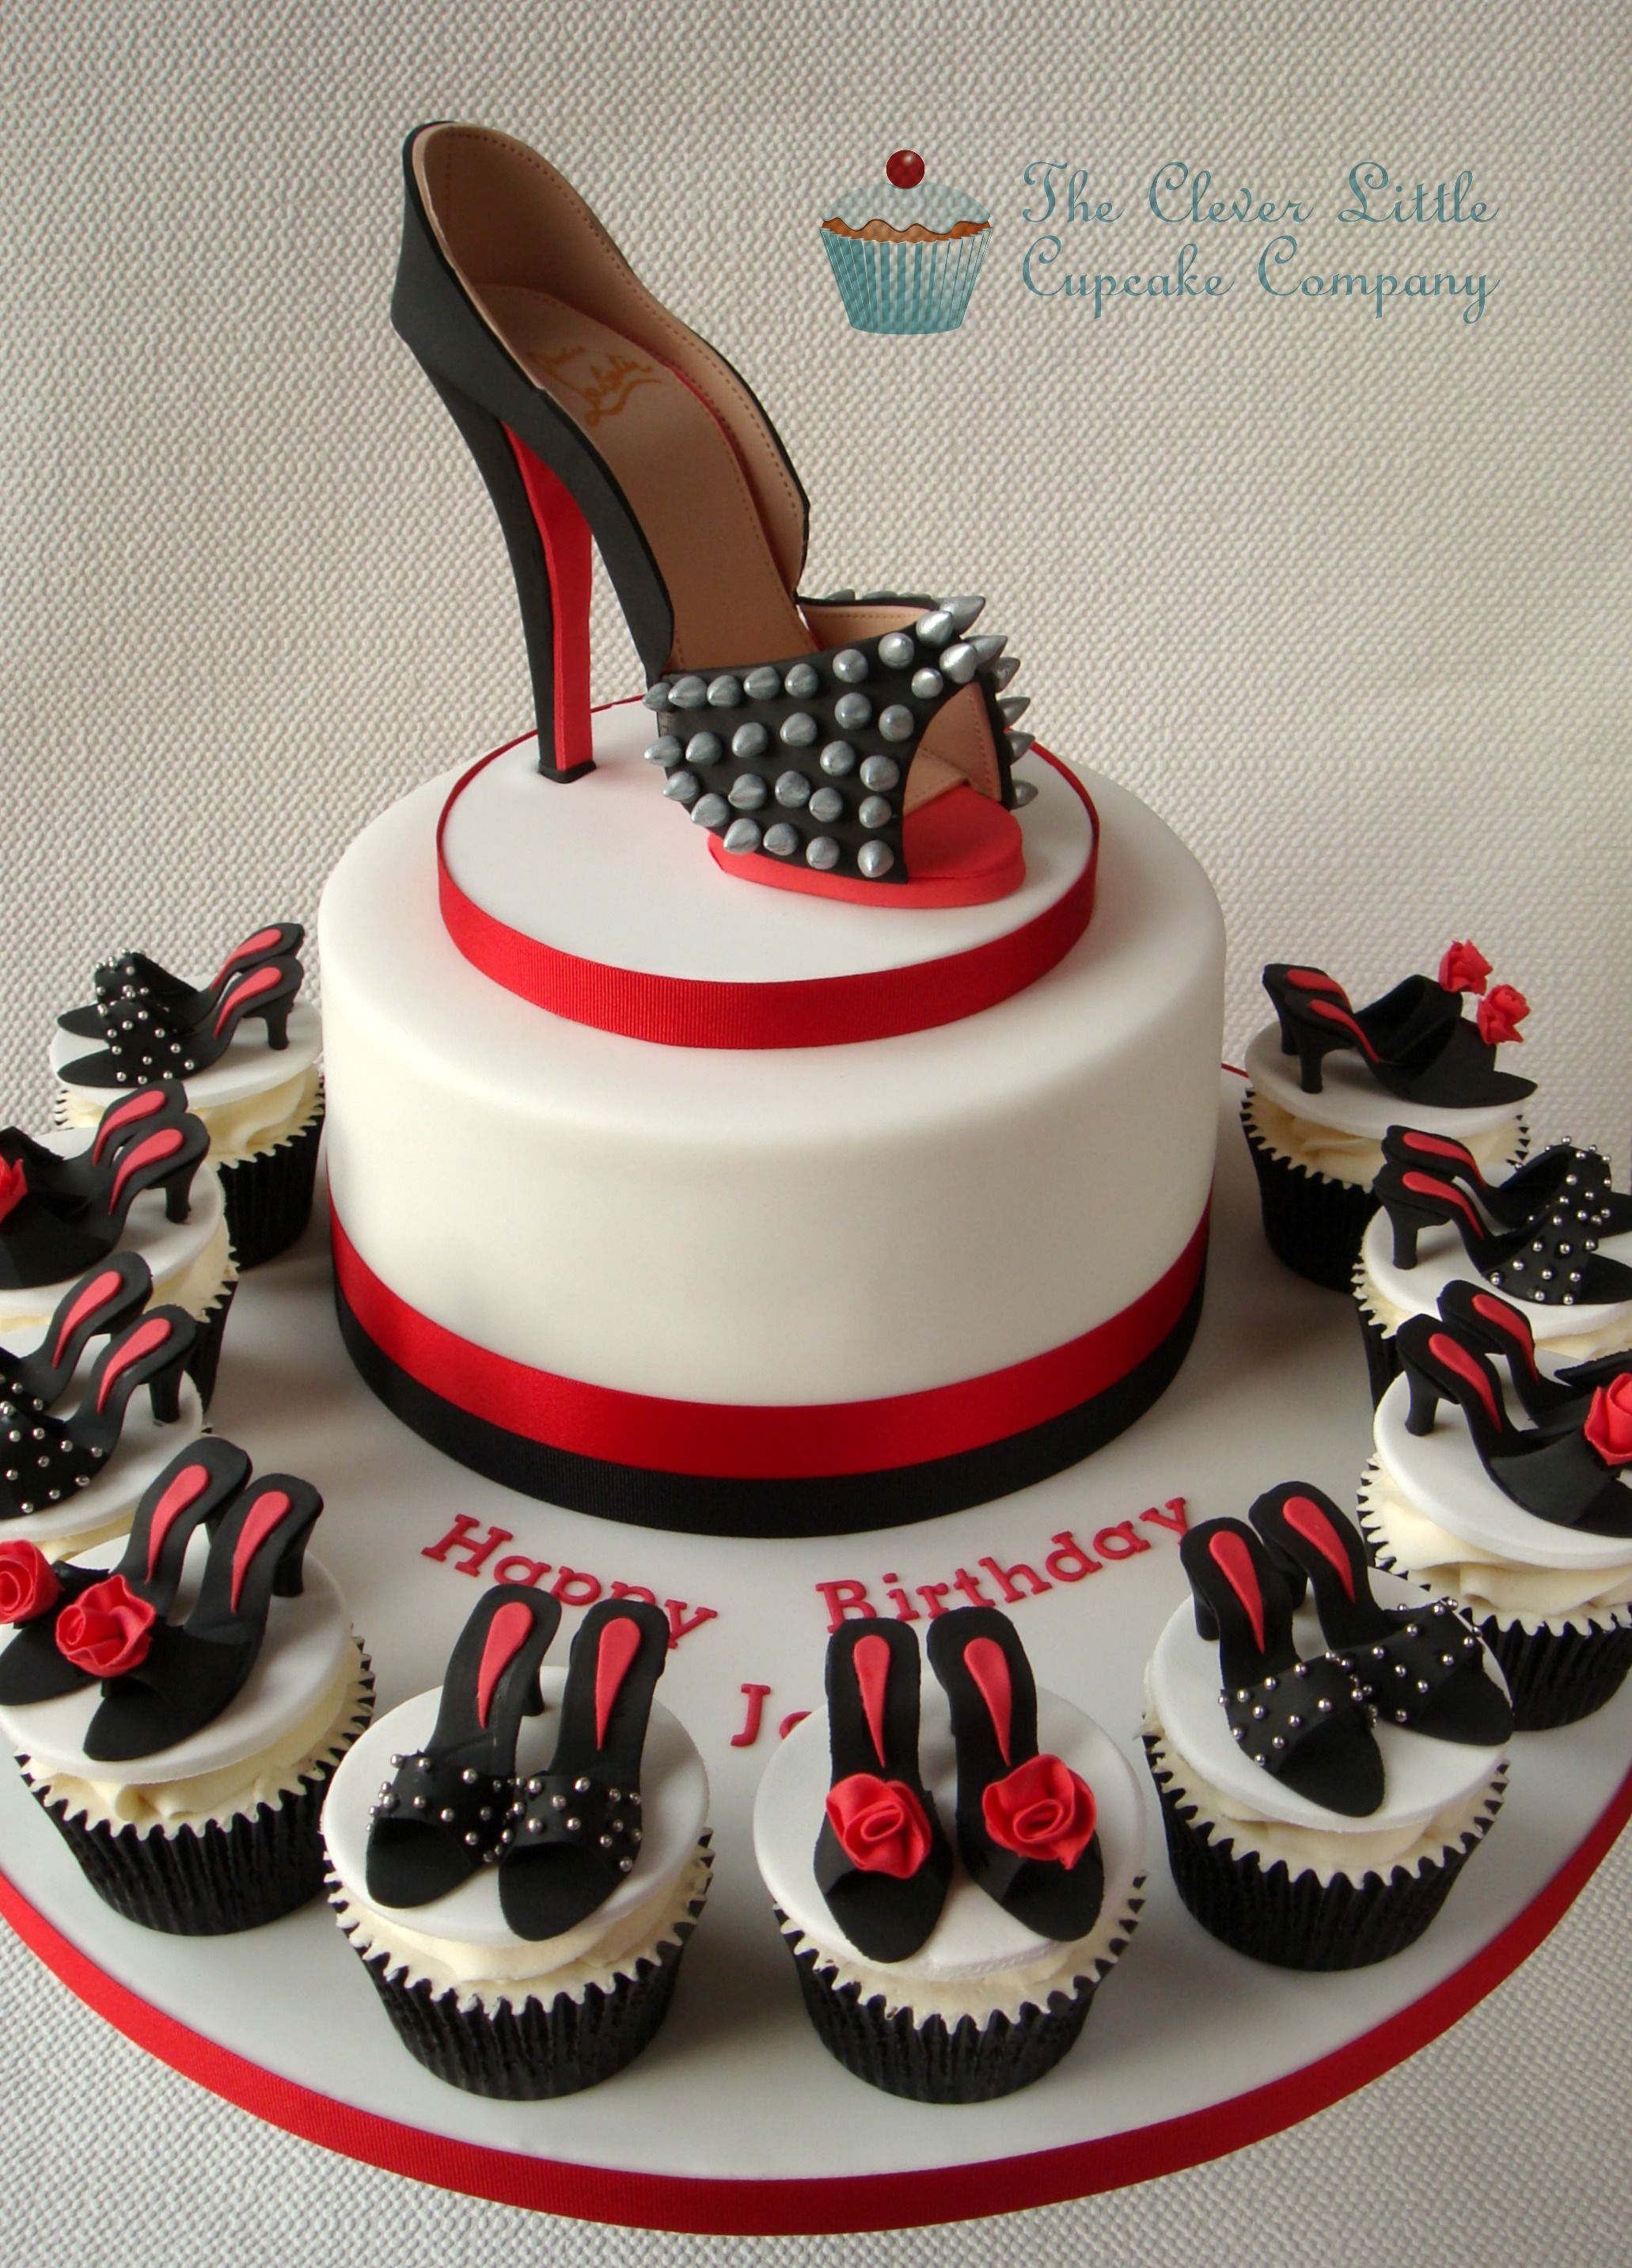 Birthday Cake Designs Shoes : This has ur name all over it @Brandi BarrazaZaragoza... I ...